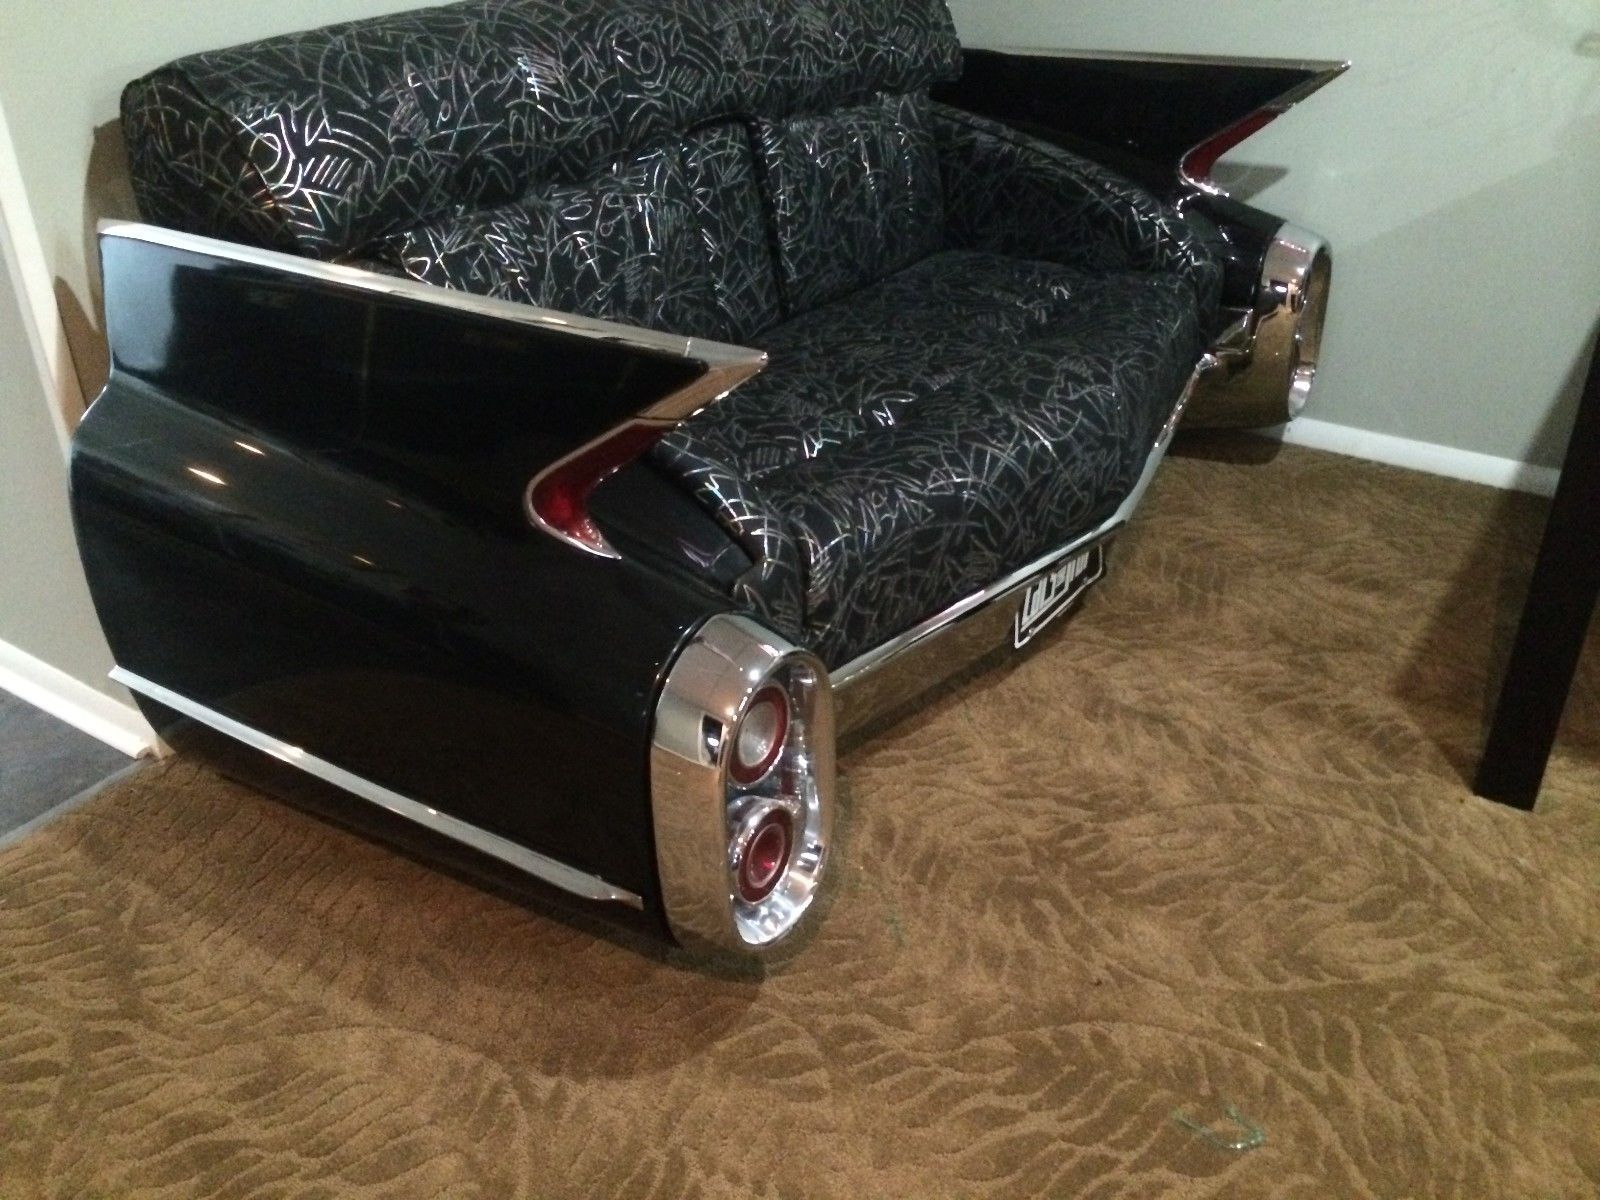 1961 Black Cadillac Car Couch Sofa Ebay The Real Steel